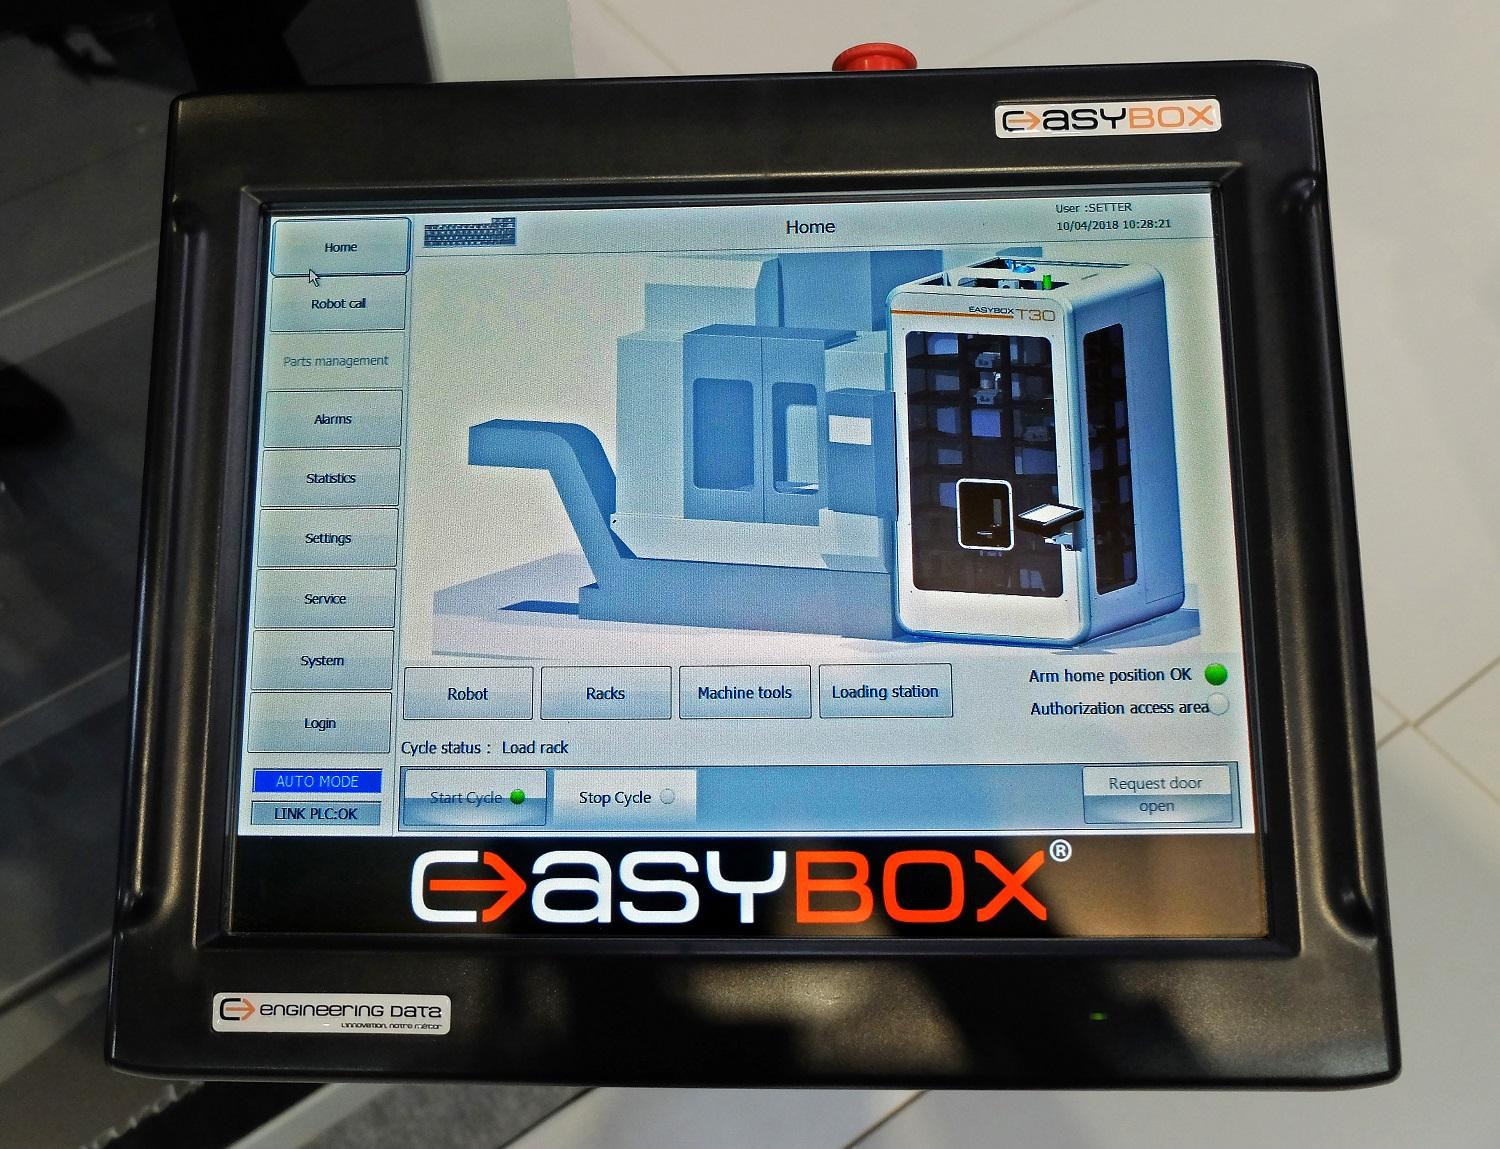 The touchscreen panel for operating the robot is easily interfaced with all major types of machine tool control